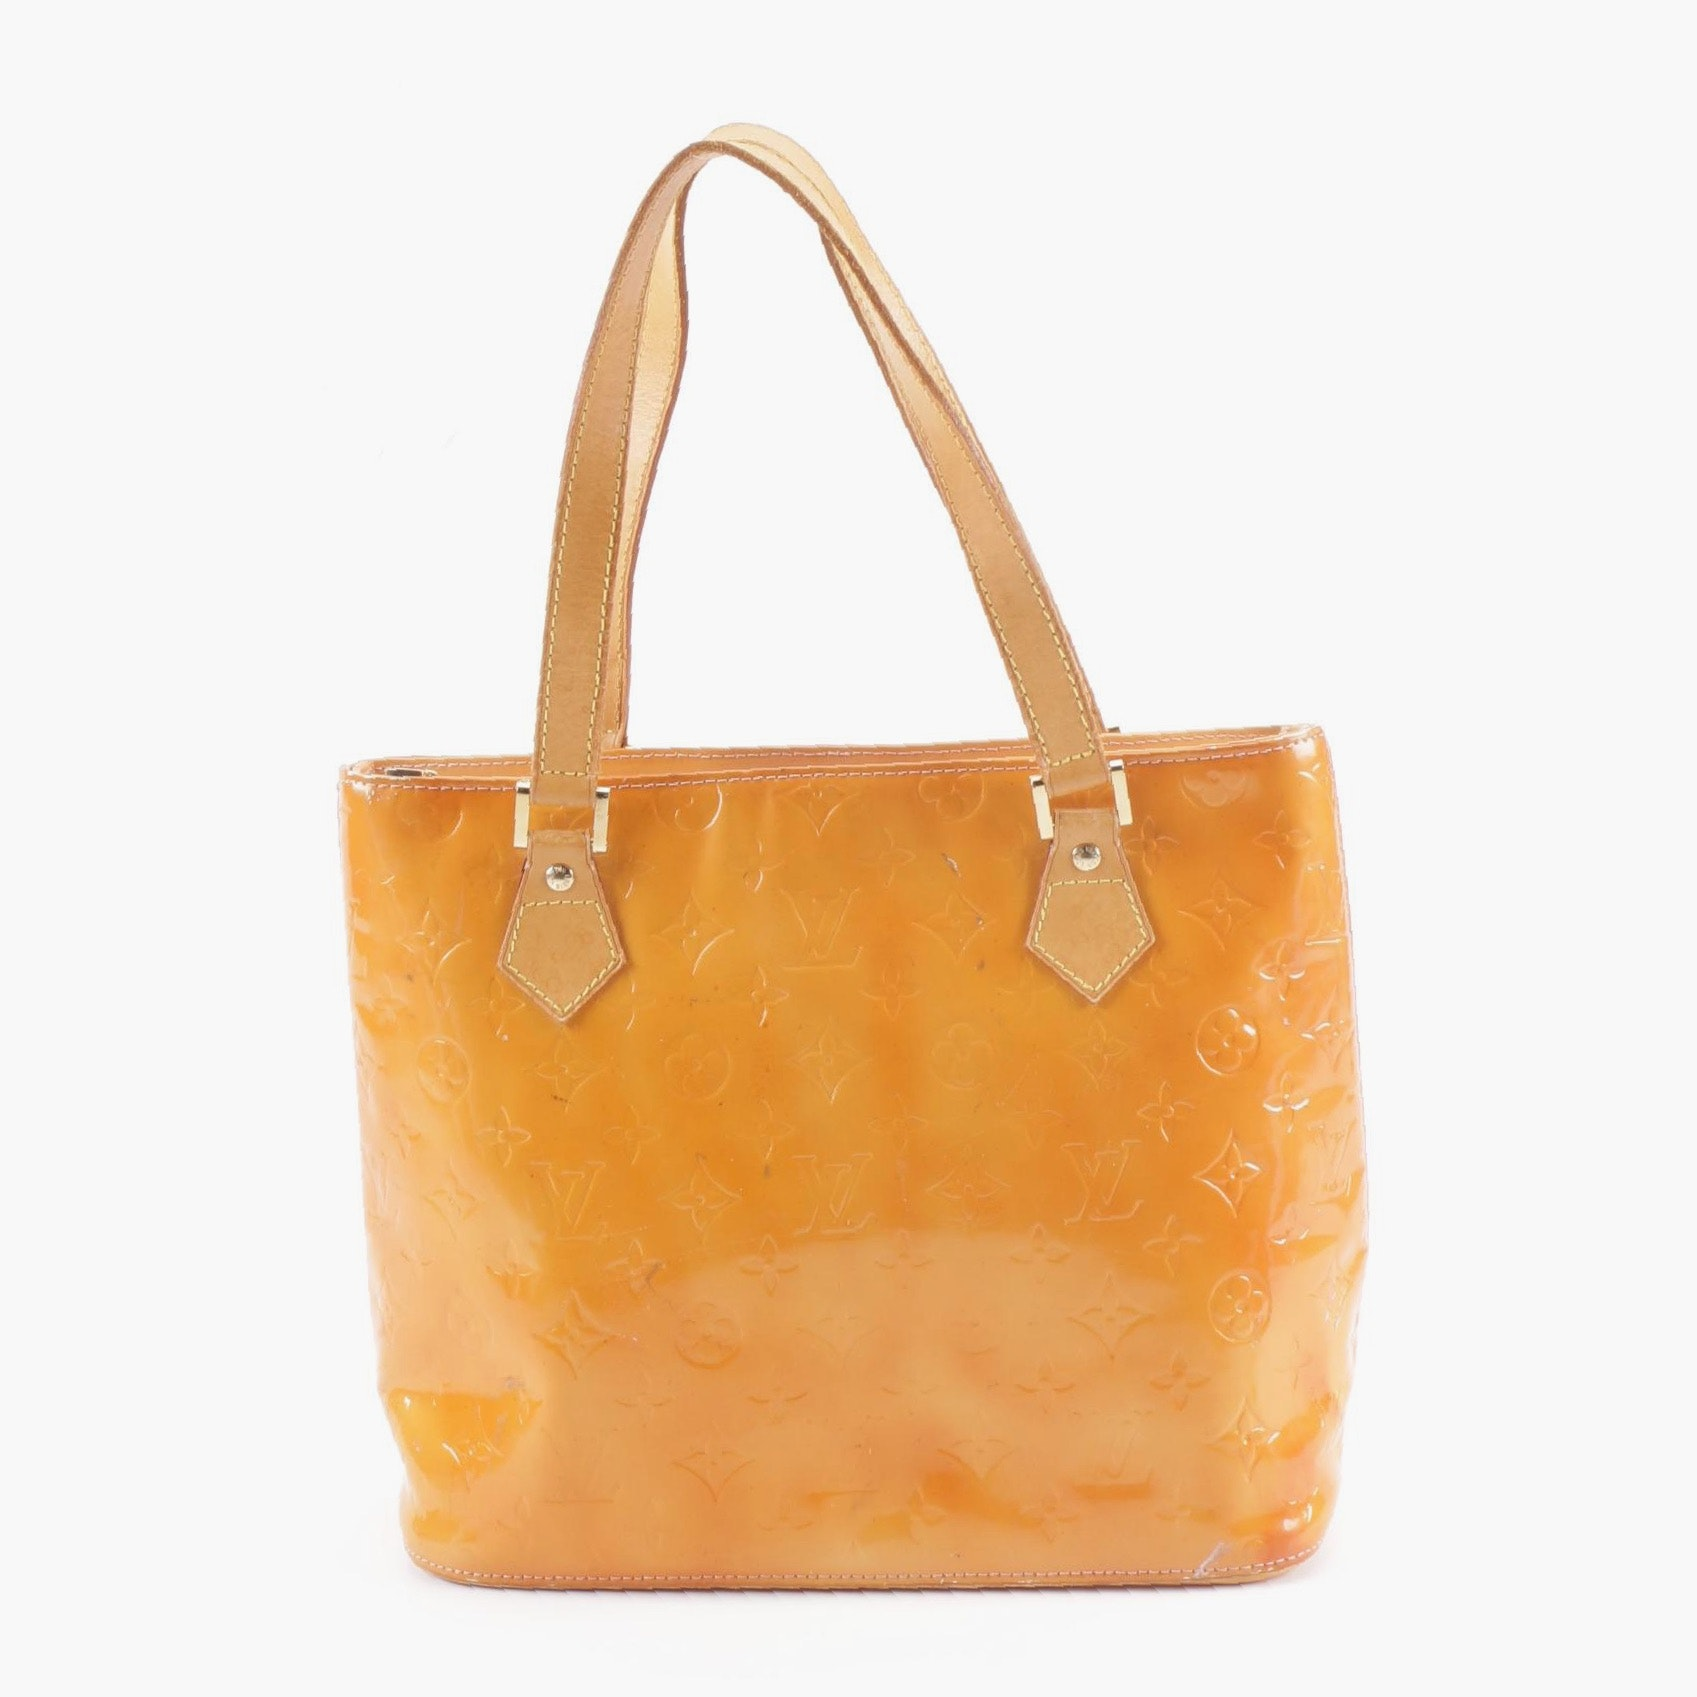 1999 Louis Vuitton Paris Mango Vernis Leather Houston Tote